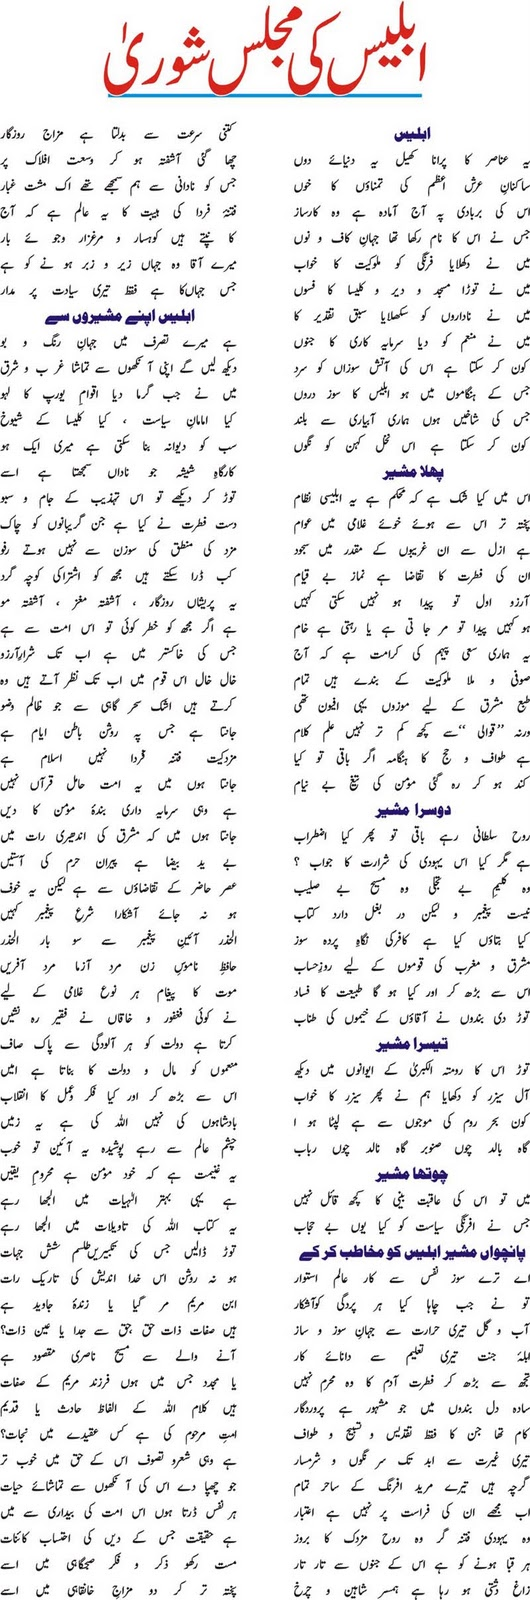 pakistani chudai ki stories inurdu font